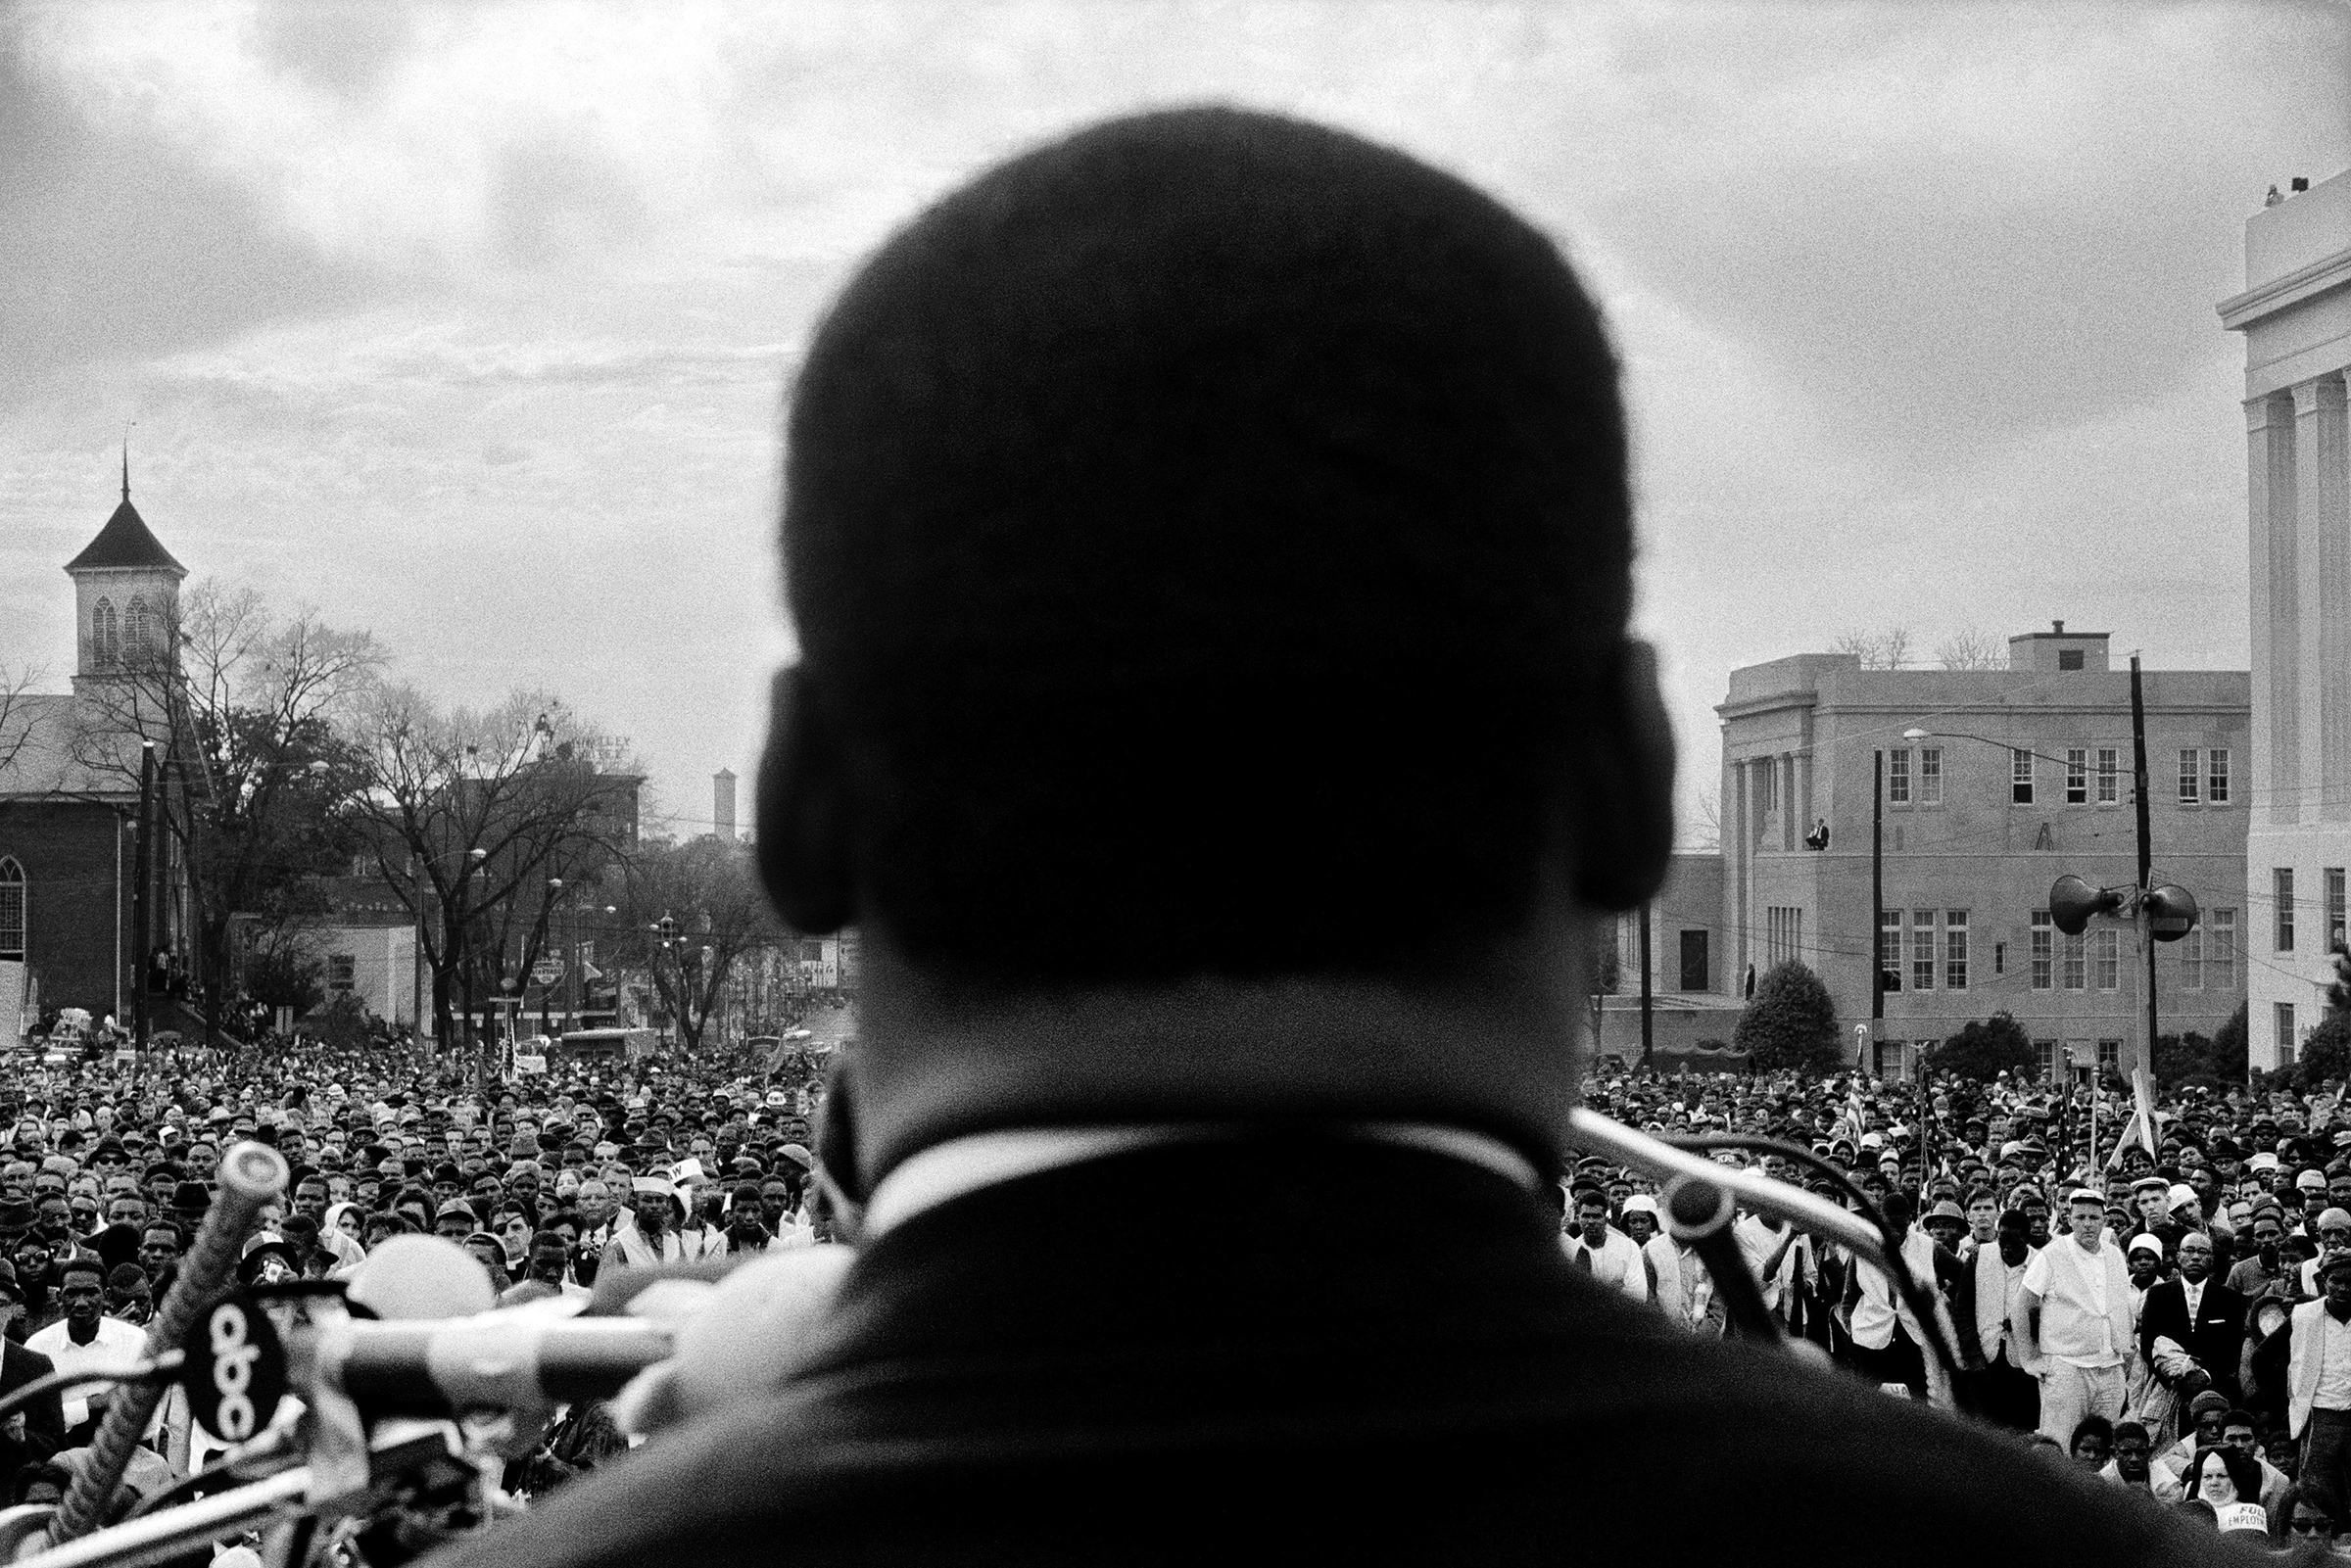 Dr. Martin Luther King, Jr. seen close from the rear, speaking to 25,000 civil rights marchers in front of the Alabama state capital building, at the conclusion of the Selma to Montgomery march, Montgomery, Alabama, March 25, 1965.